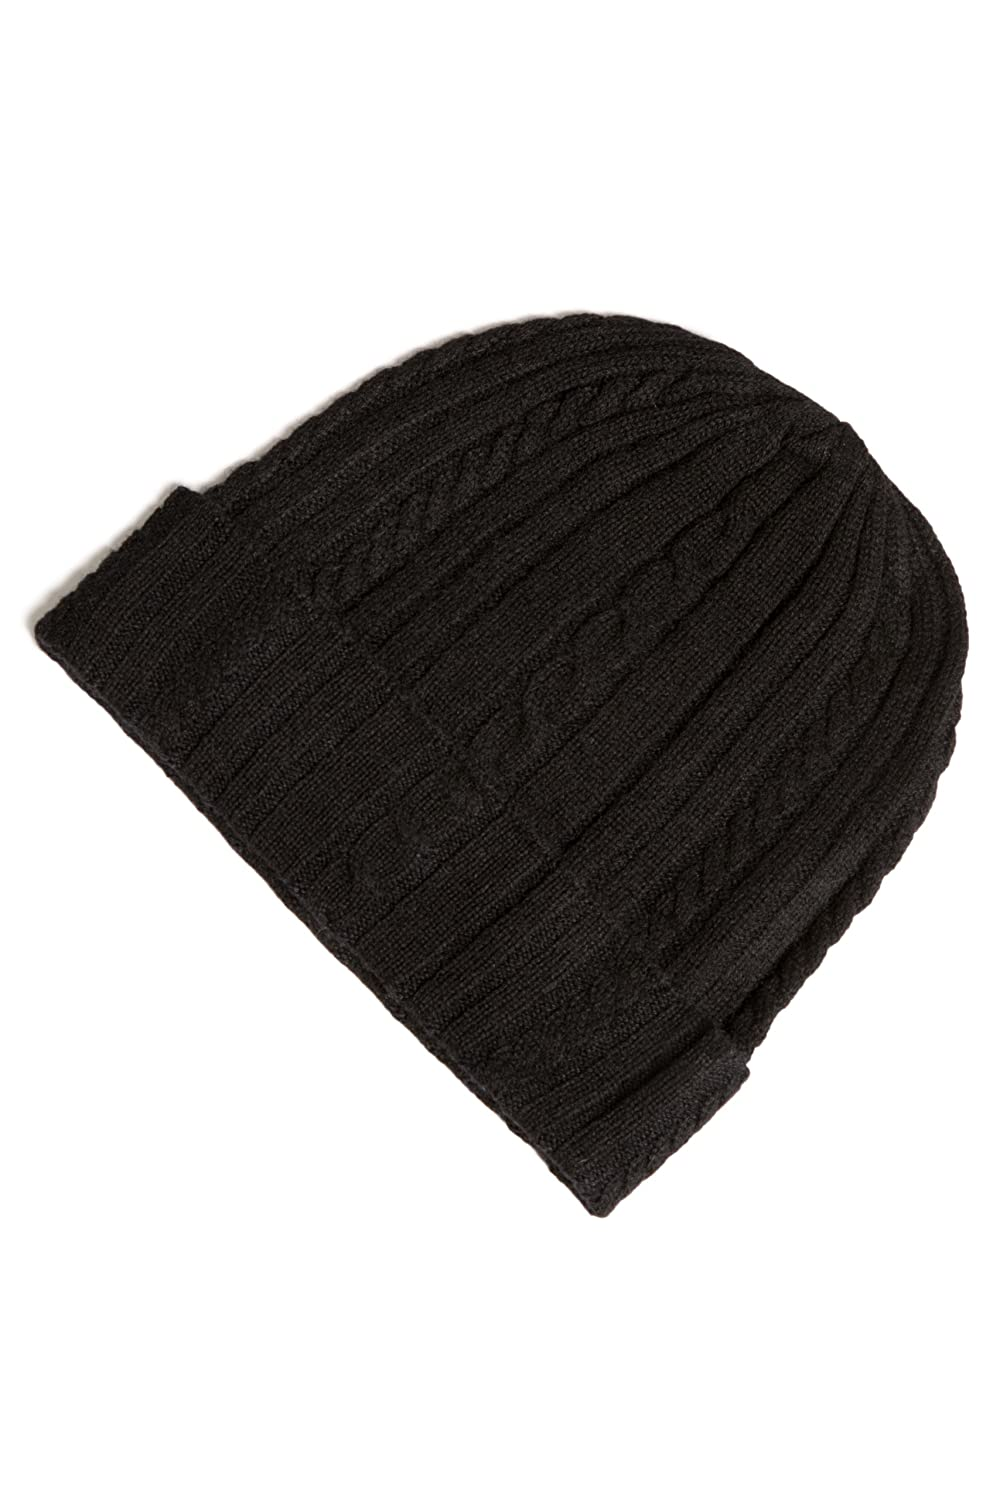 840059fa6 Fishers Finery Women's 100% Pure Cashmere Cable Knit Hat; Super Soft; Cuffed